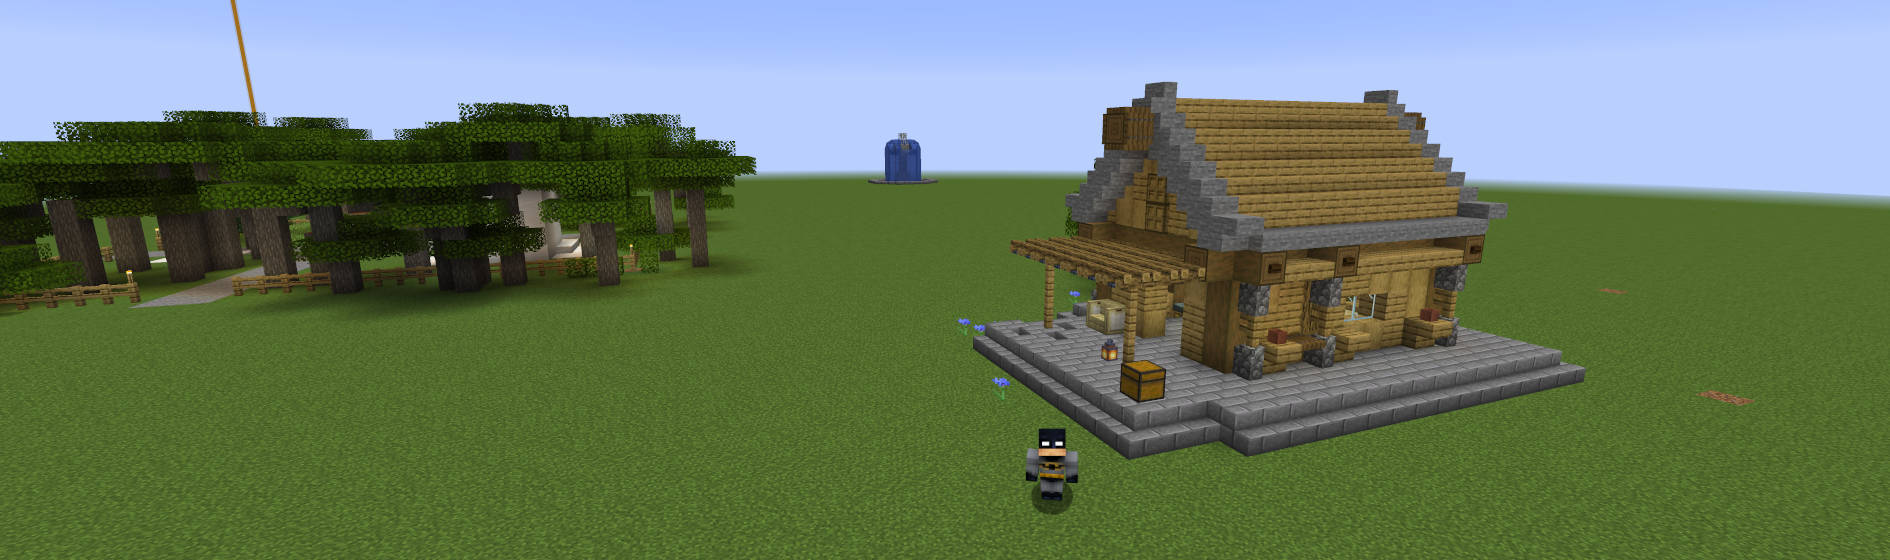 Image of cabin built within Queensland Minecraft